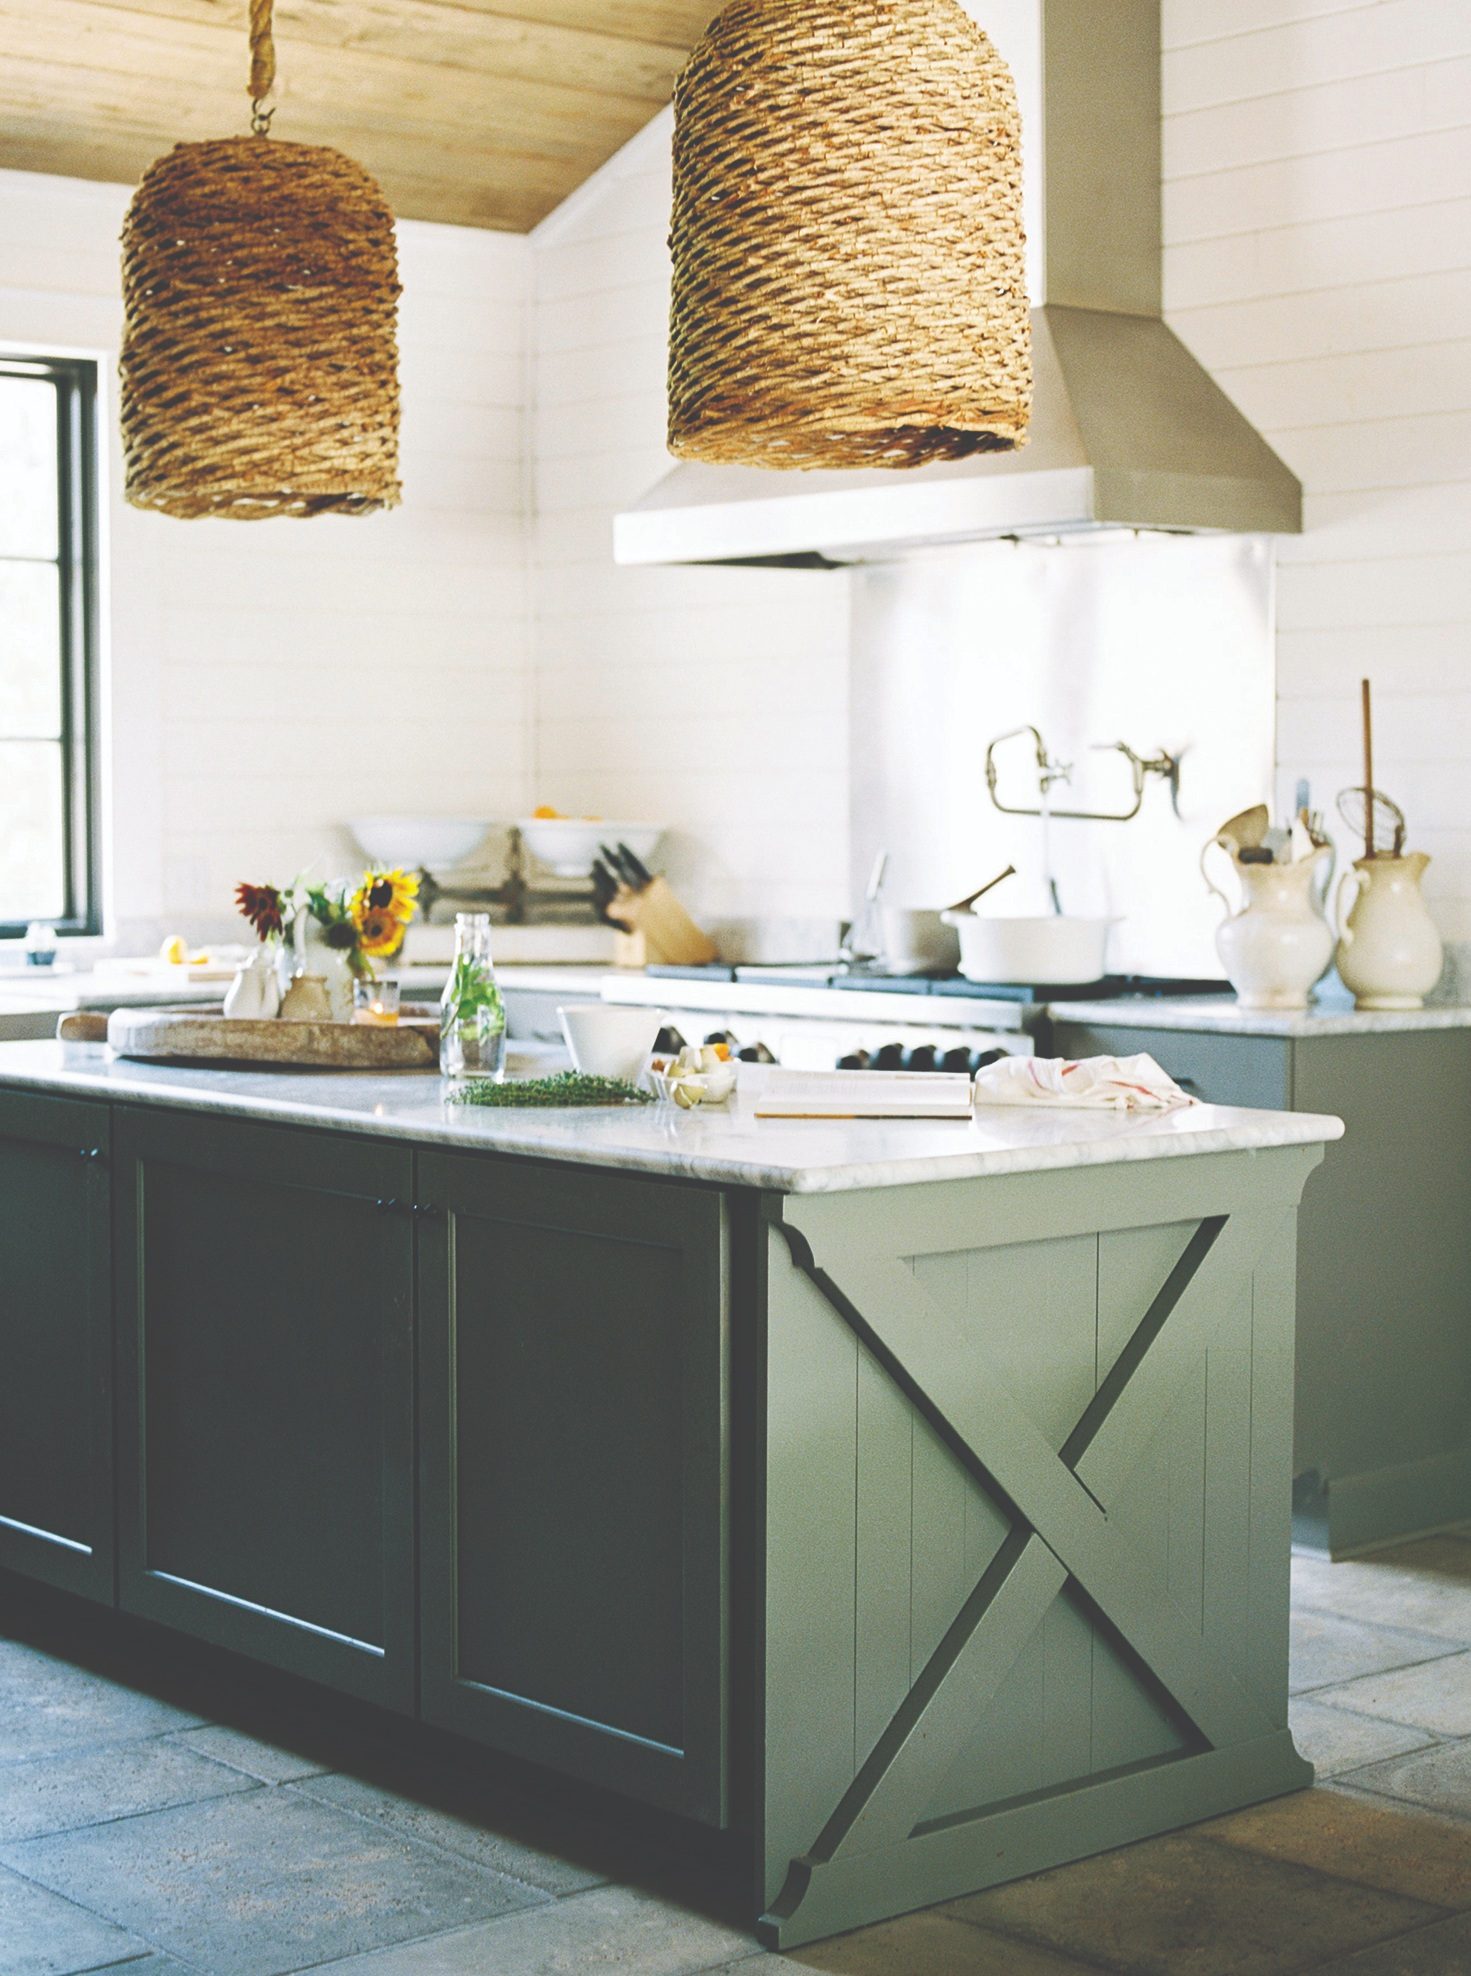 When & where? - The workshop will take place on Wednesday, October 16, 2019 at Bloomsbury Farm in Smyrna, Tennessee. The workshop activities will go from 9am to 5pm. We'll be shooting in this beautiful kitchen and on the grounds of the farm!